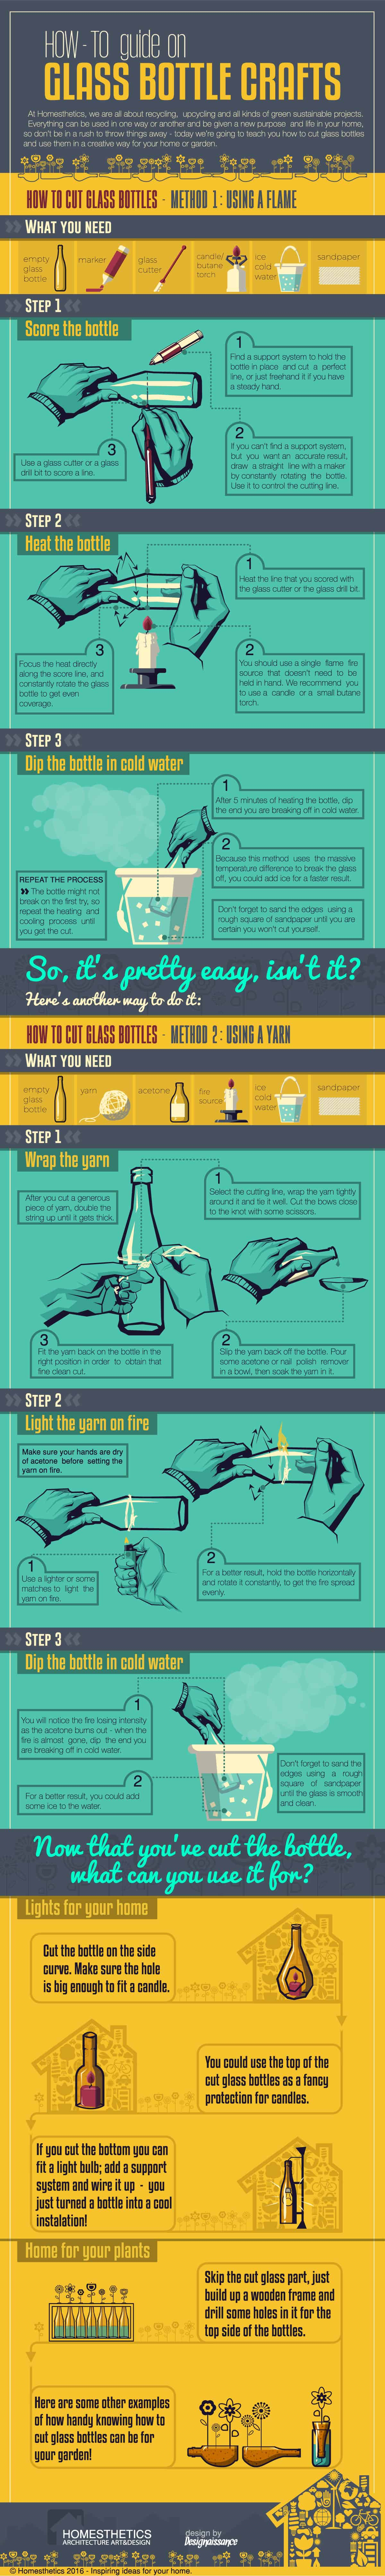 44 Simple DIY Wine Bottles Crafts And Ideas On How To Cut Glass P991S homesthetics